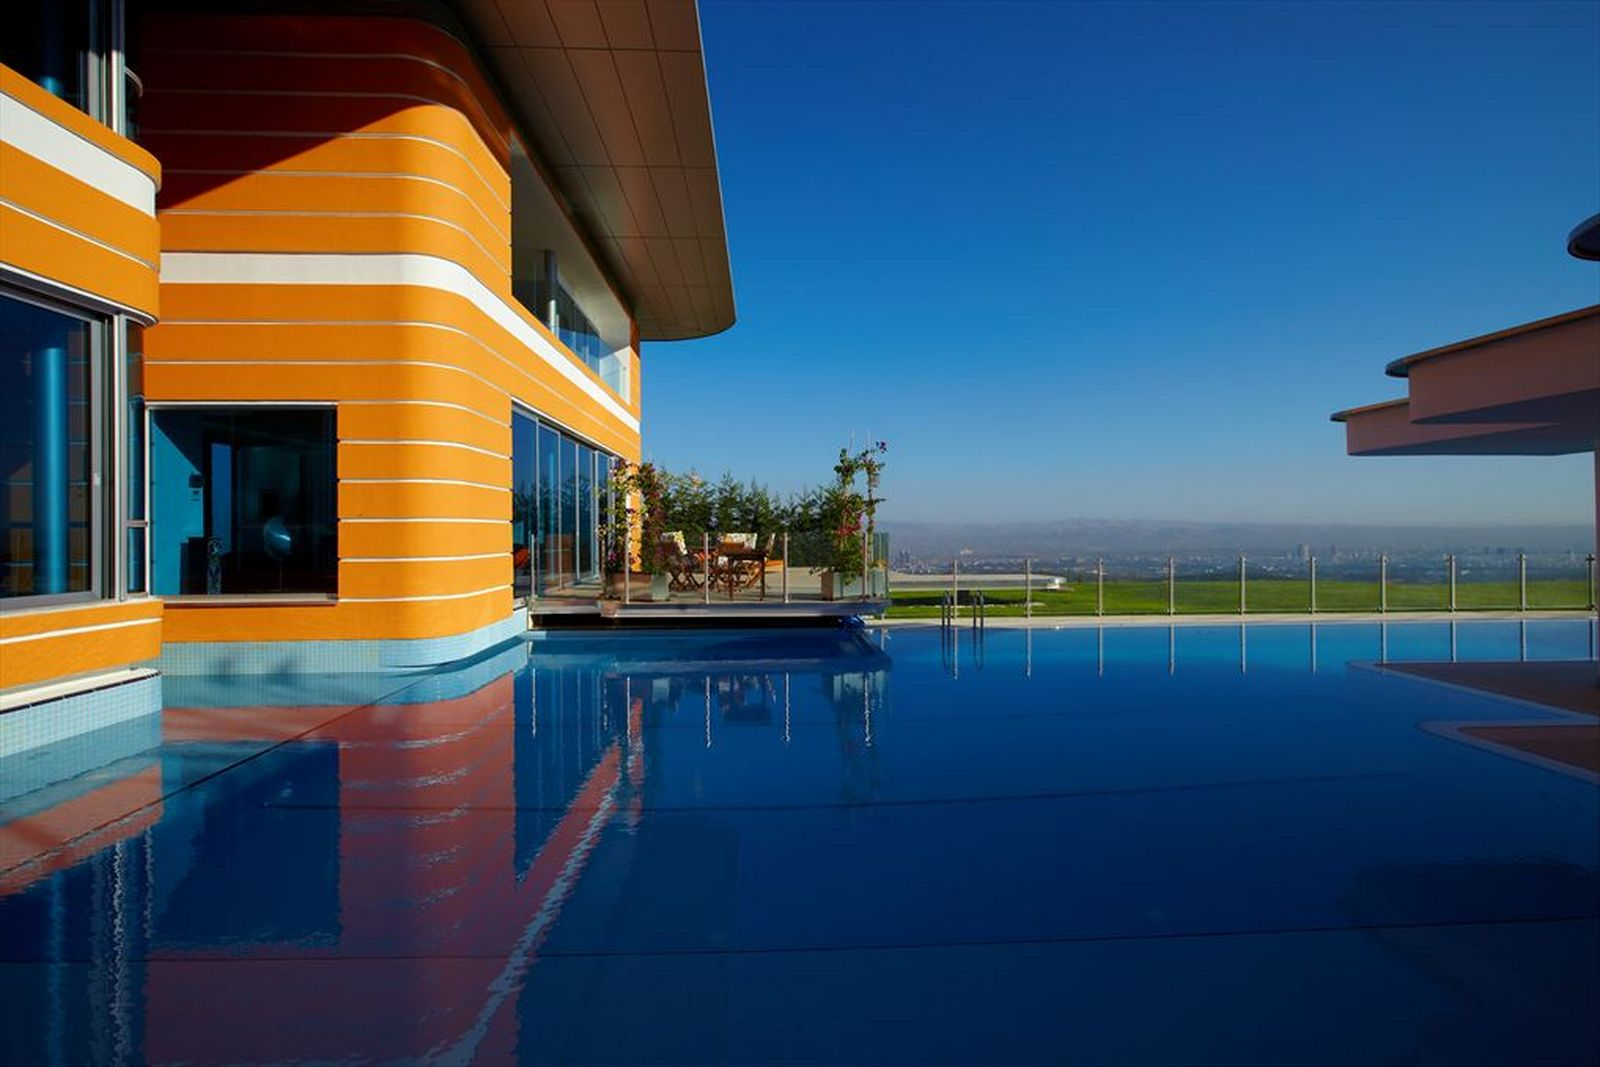 Colorful-House-Ideas-Yazgan-Design-Architecture-swimming-pool-design-5